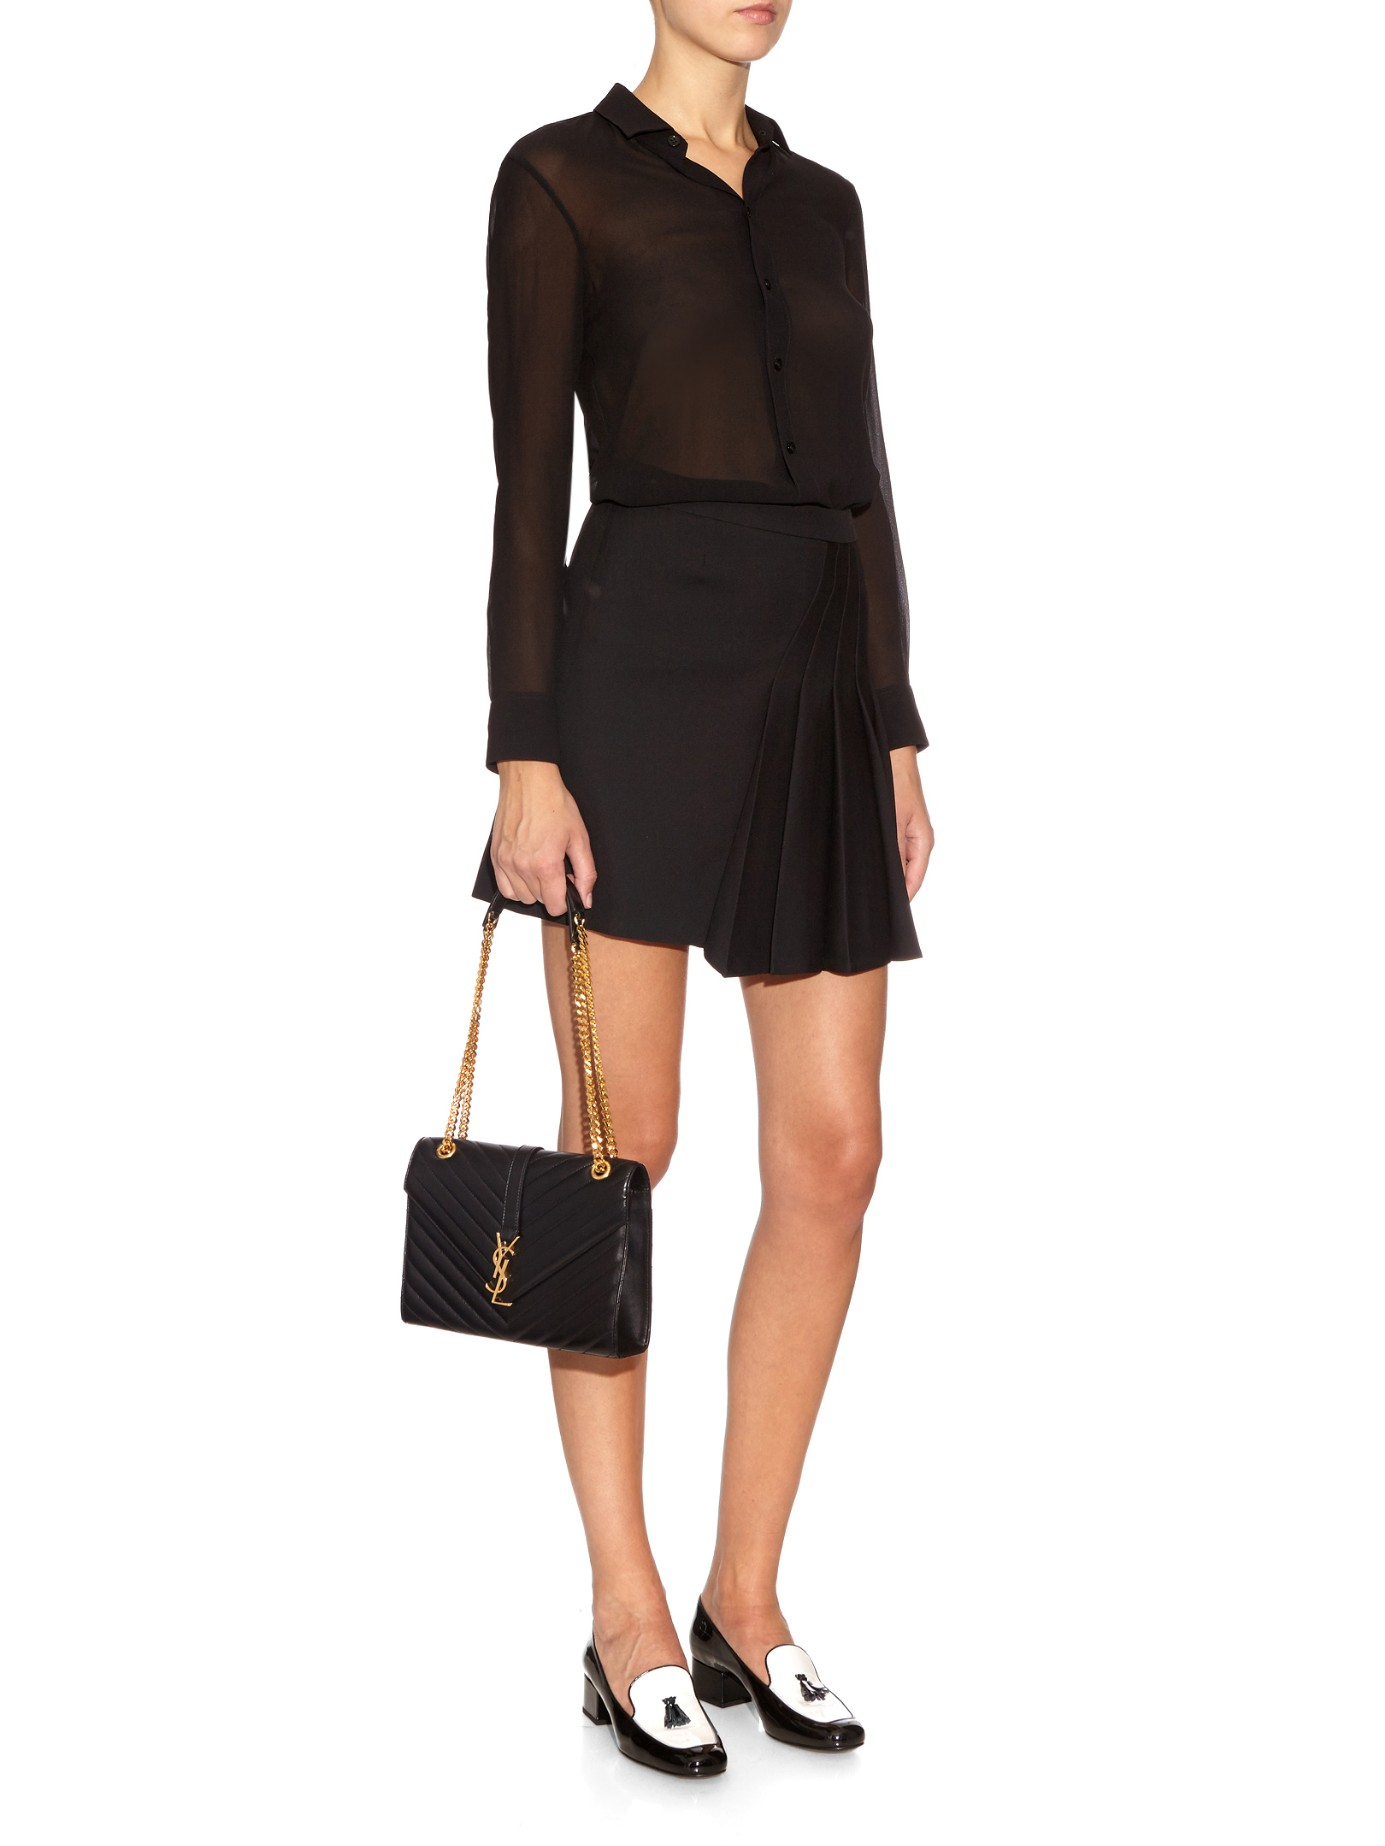 Lyst - Saint Laurent Classic Monogram Quilted-Leather Shoulder Bag in Black 687aba82a3